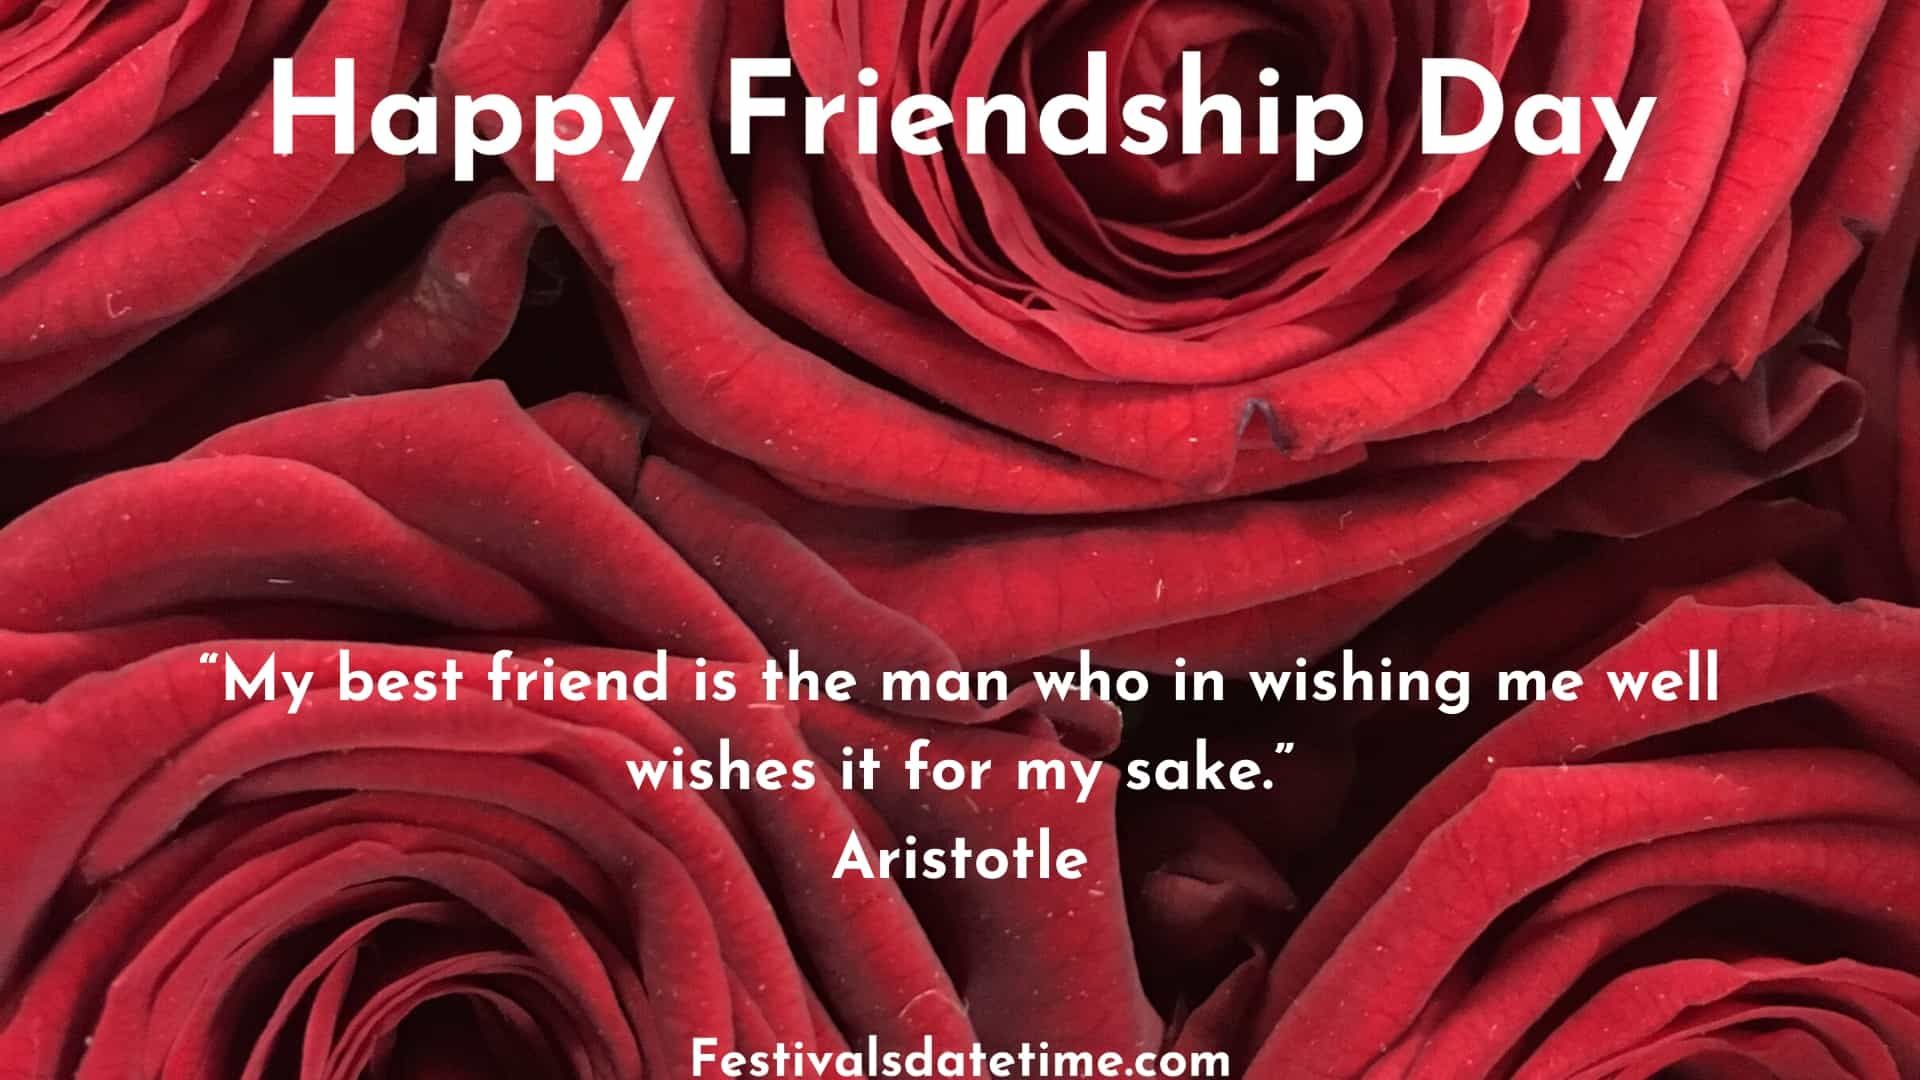 Friendship Day Wishes To Best Friend Images Happy Friendship Day Happy Friendship Friendship Day Wishes Friendship rose day images for friends